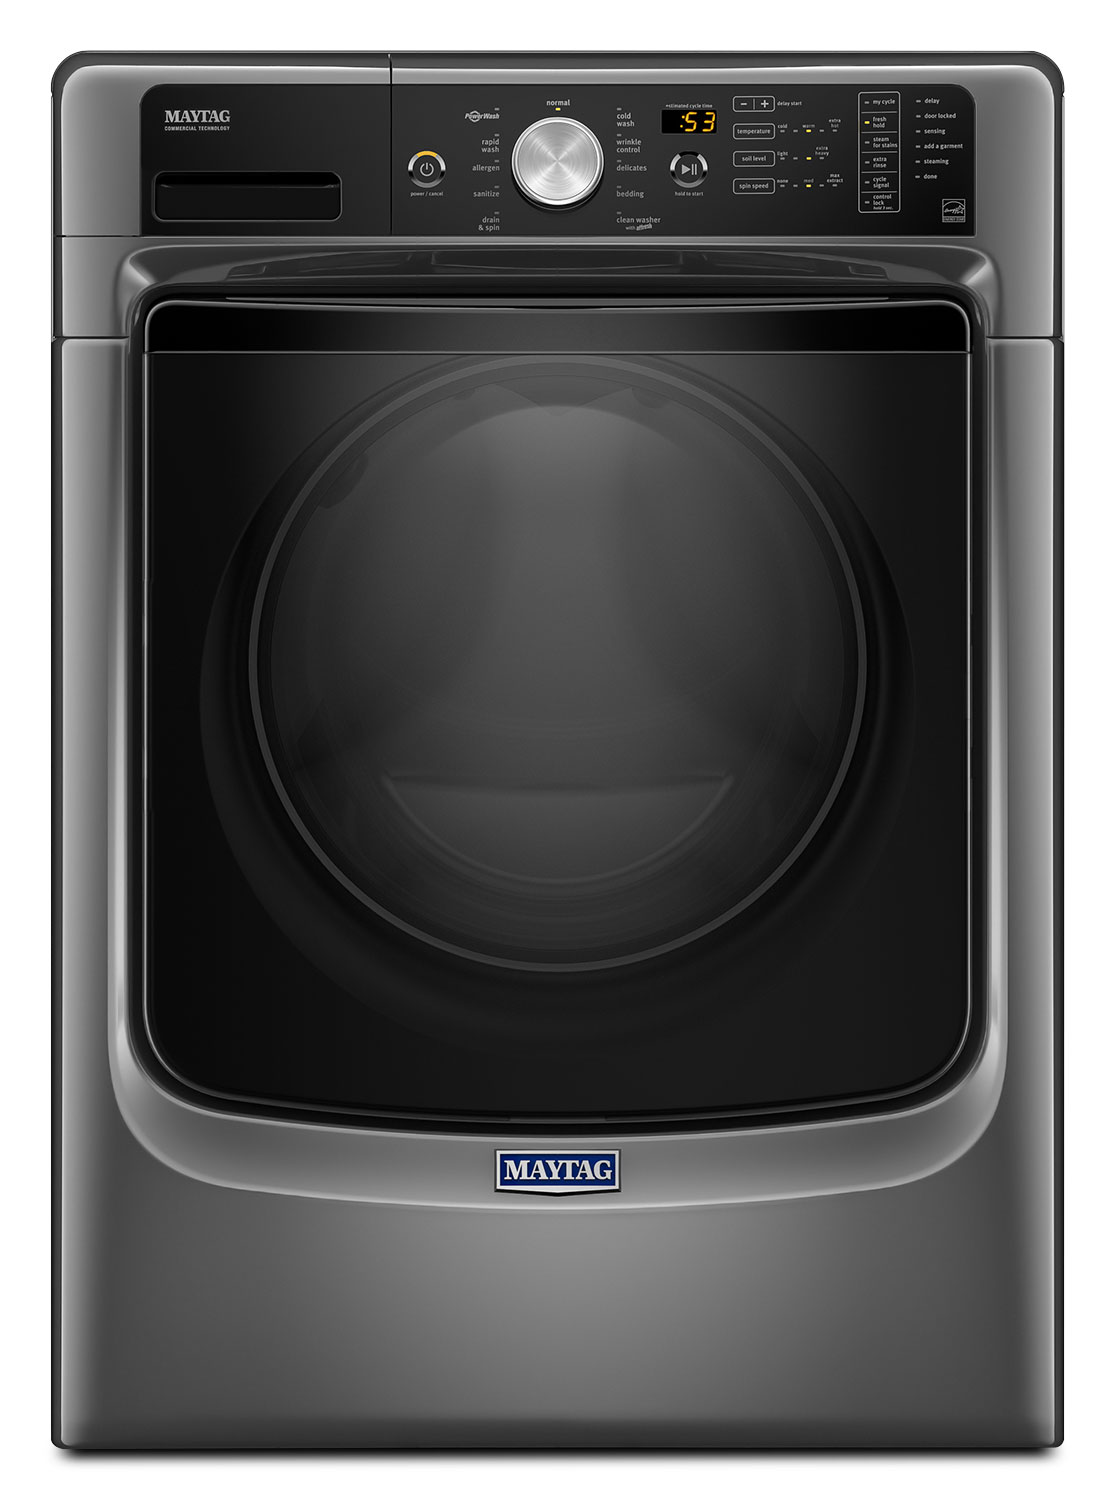 Washers and Dryers - Maytag Metallic Slate Front-Load Washer (5.2 Cu. Ft. IEC) - MHW5500FC